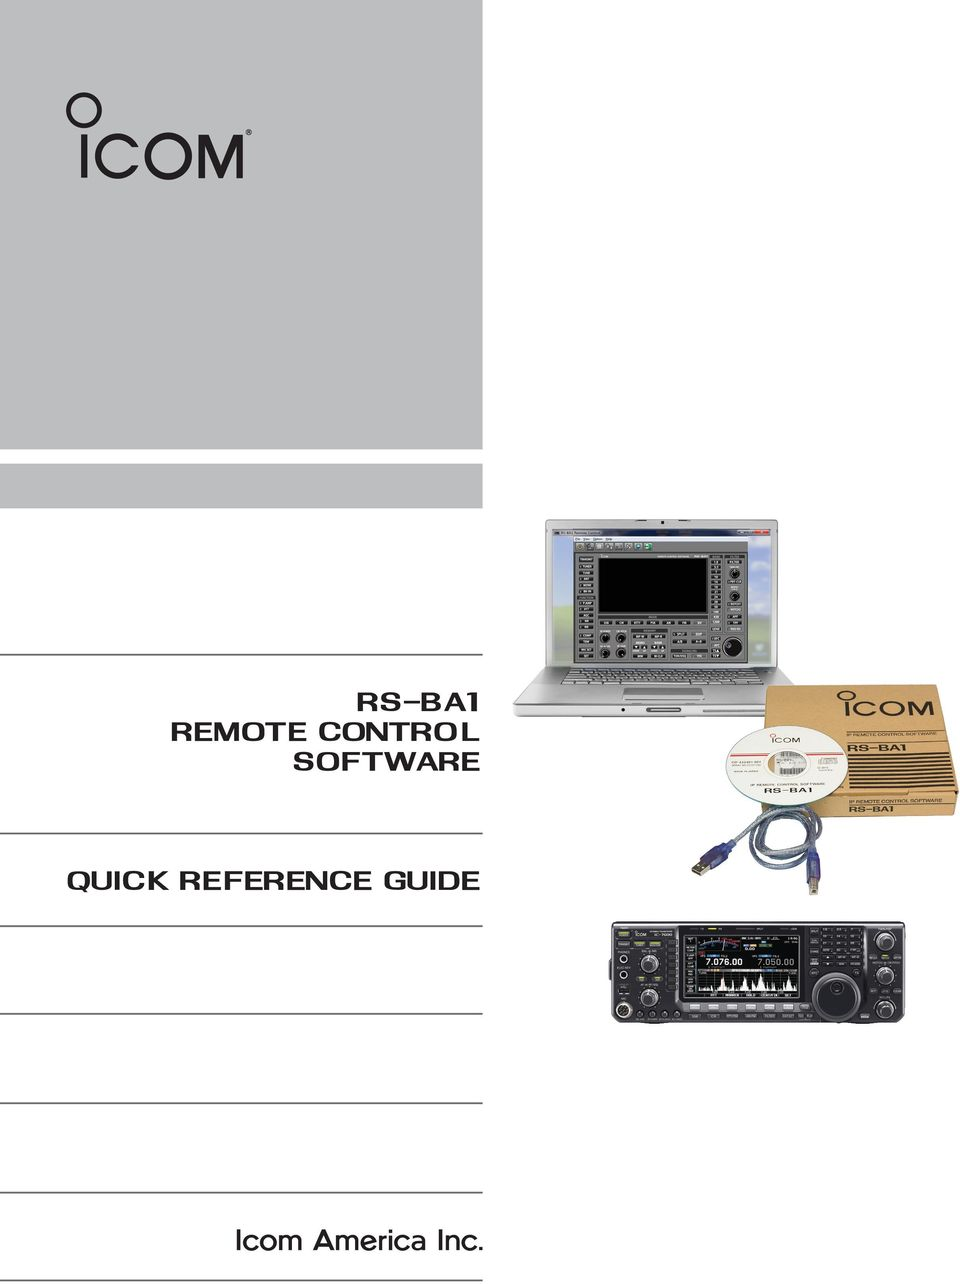 rs-ba1 remote control software quick reference guide - PDF